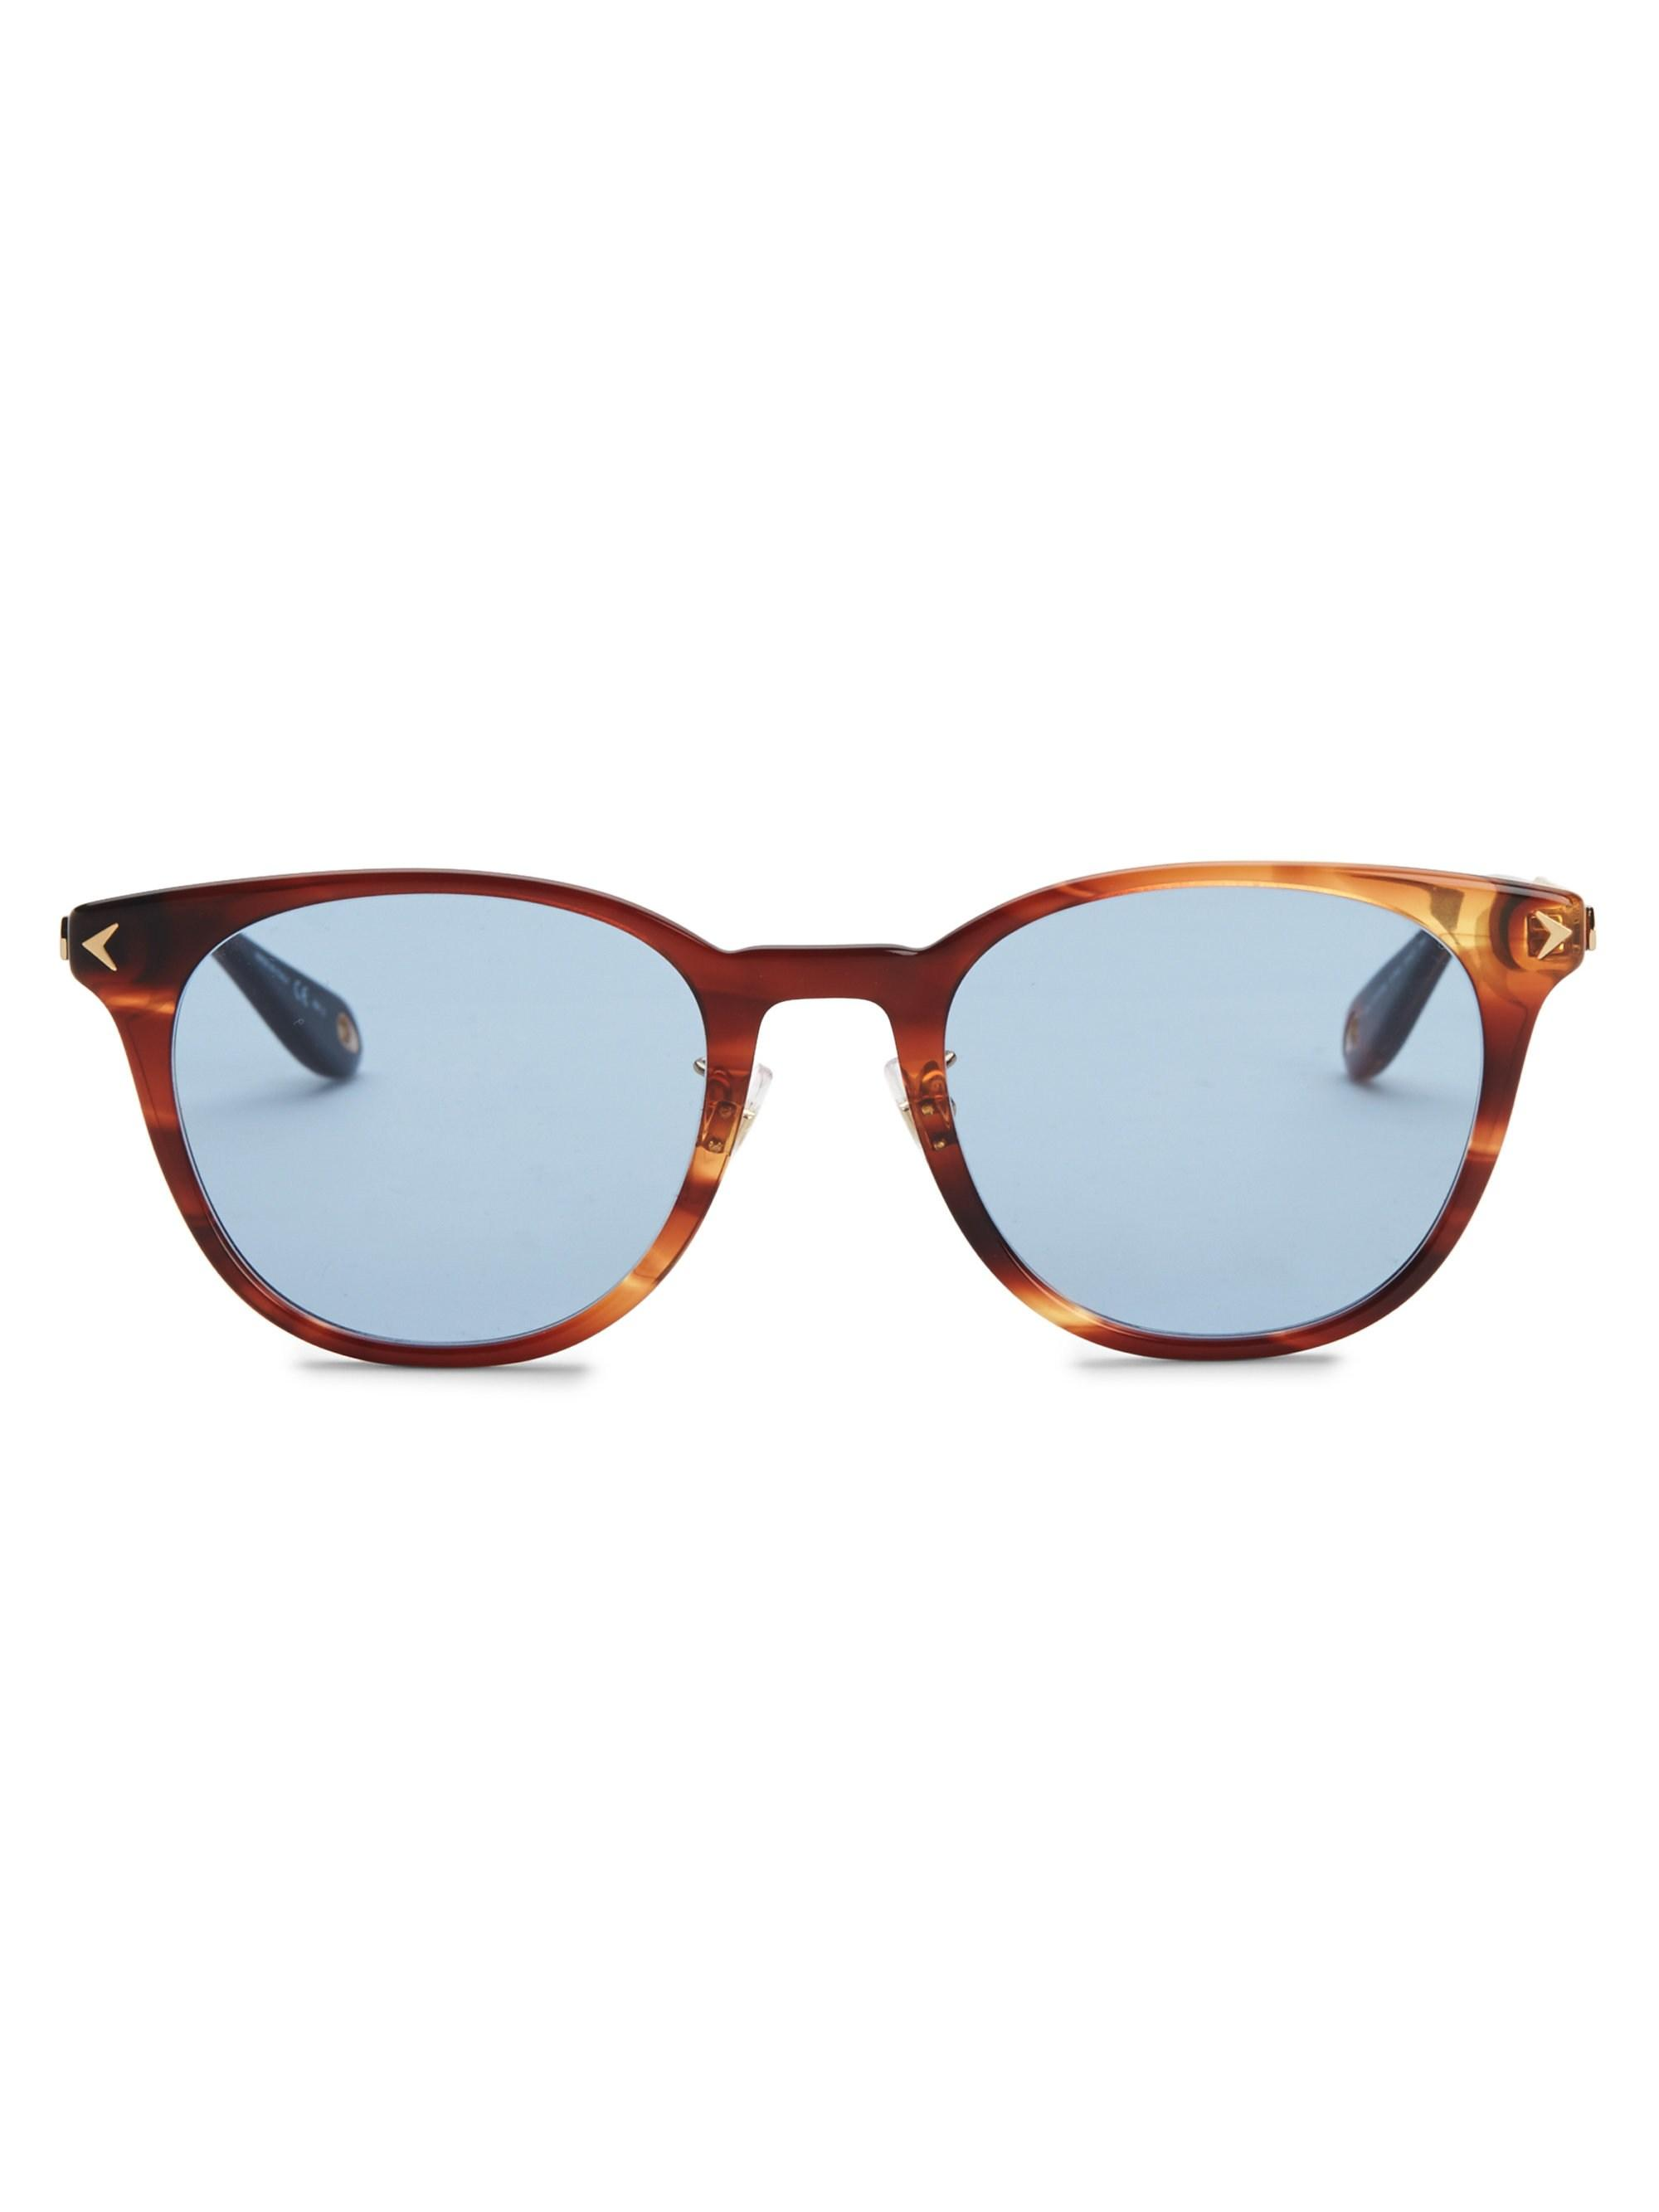 0d1c7421f Lyst - Givenchy Men's 51mm Round Sunglasses - Striped Bd in Blue for Men